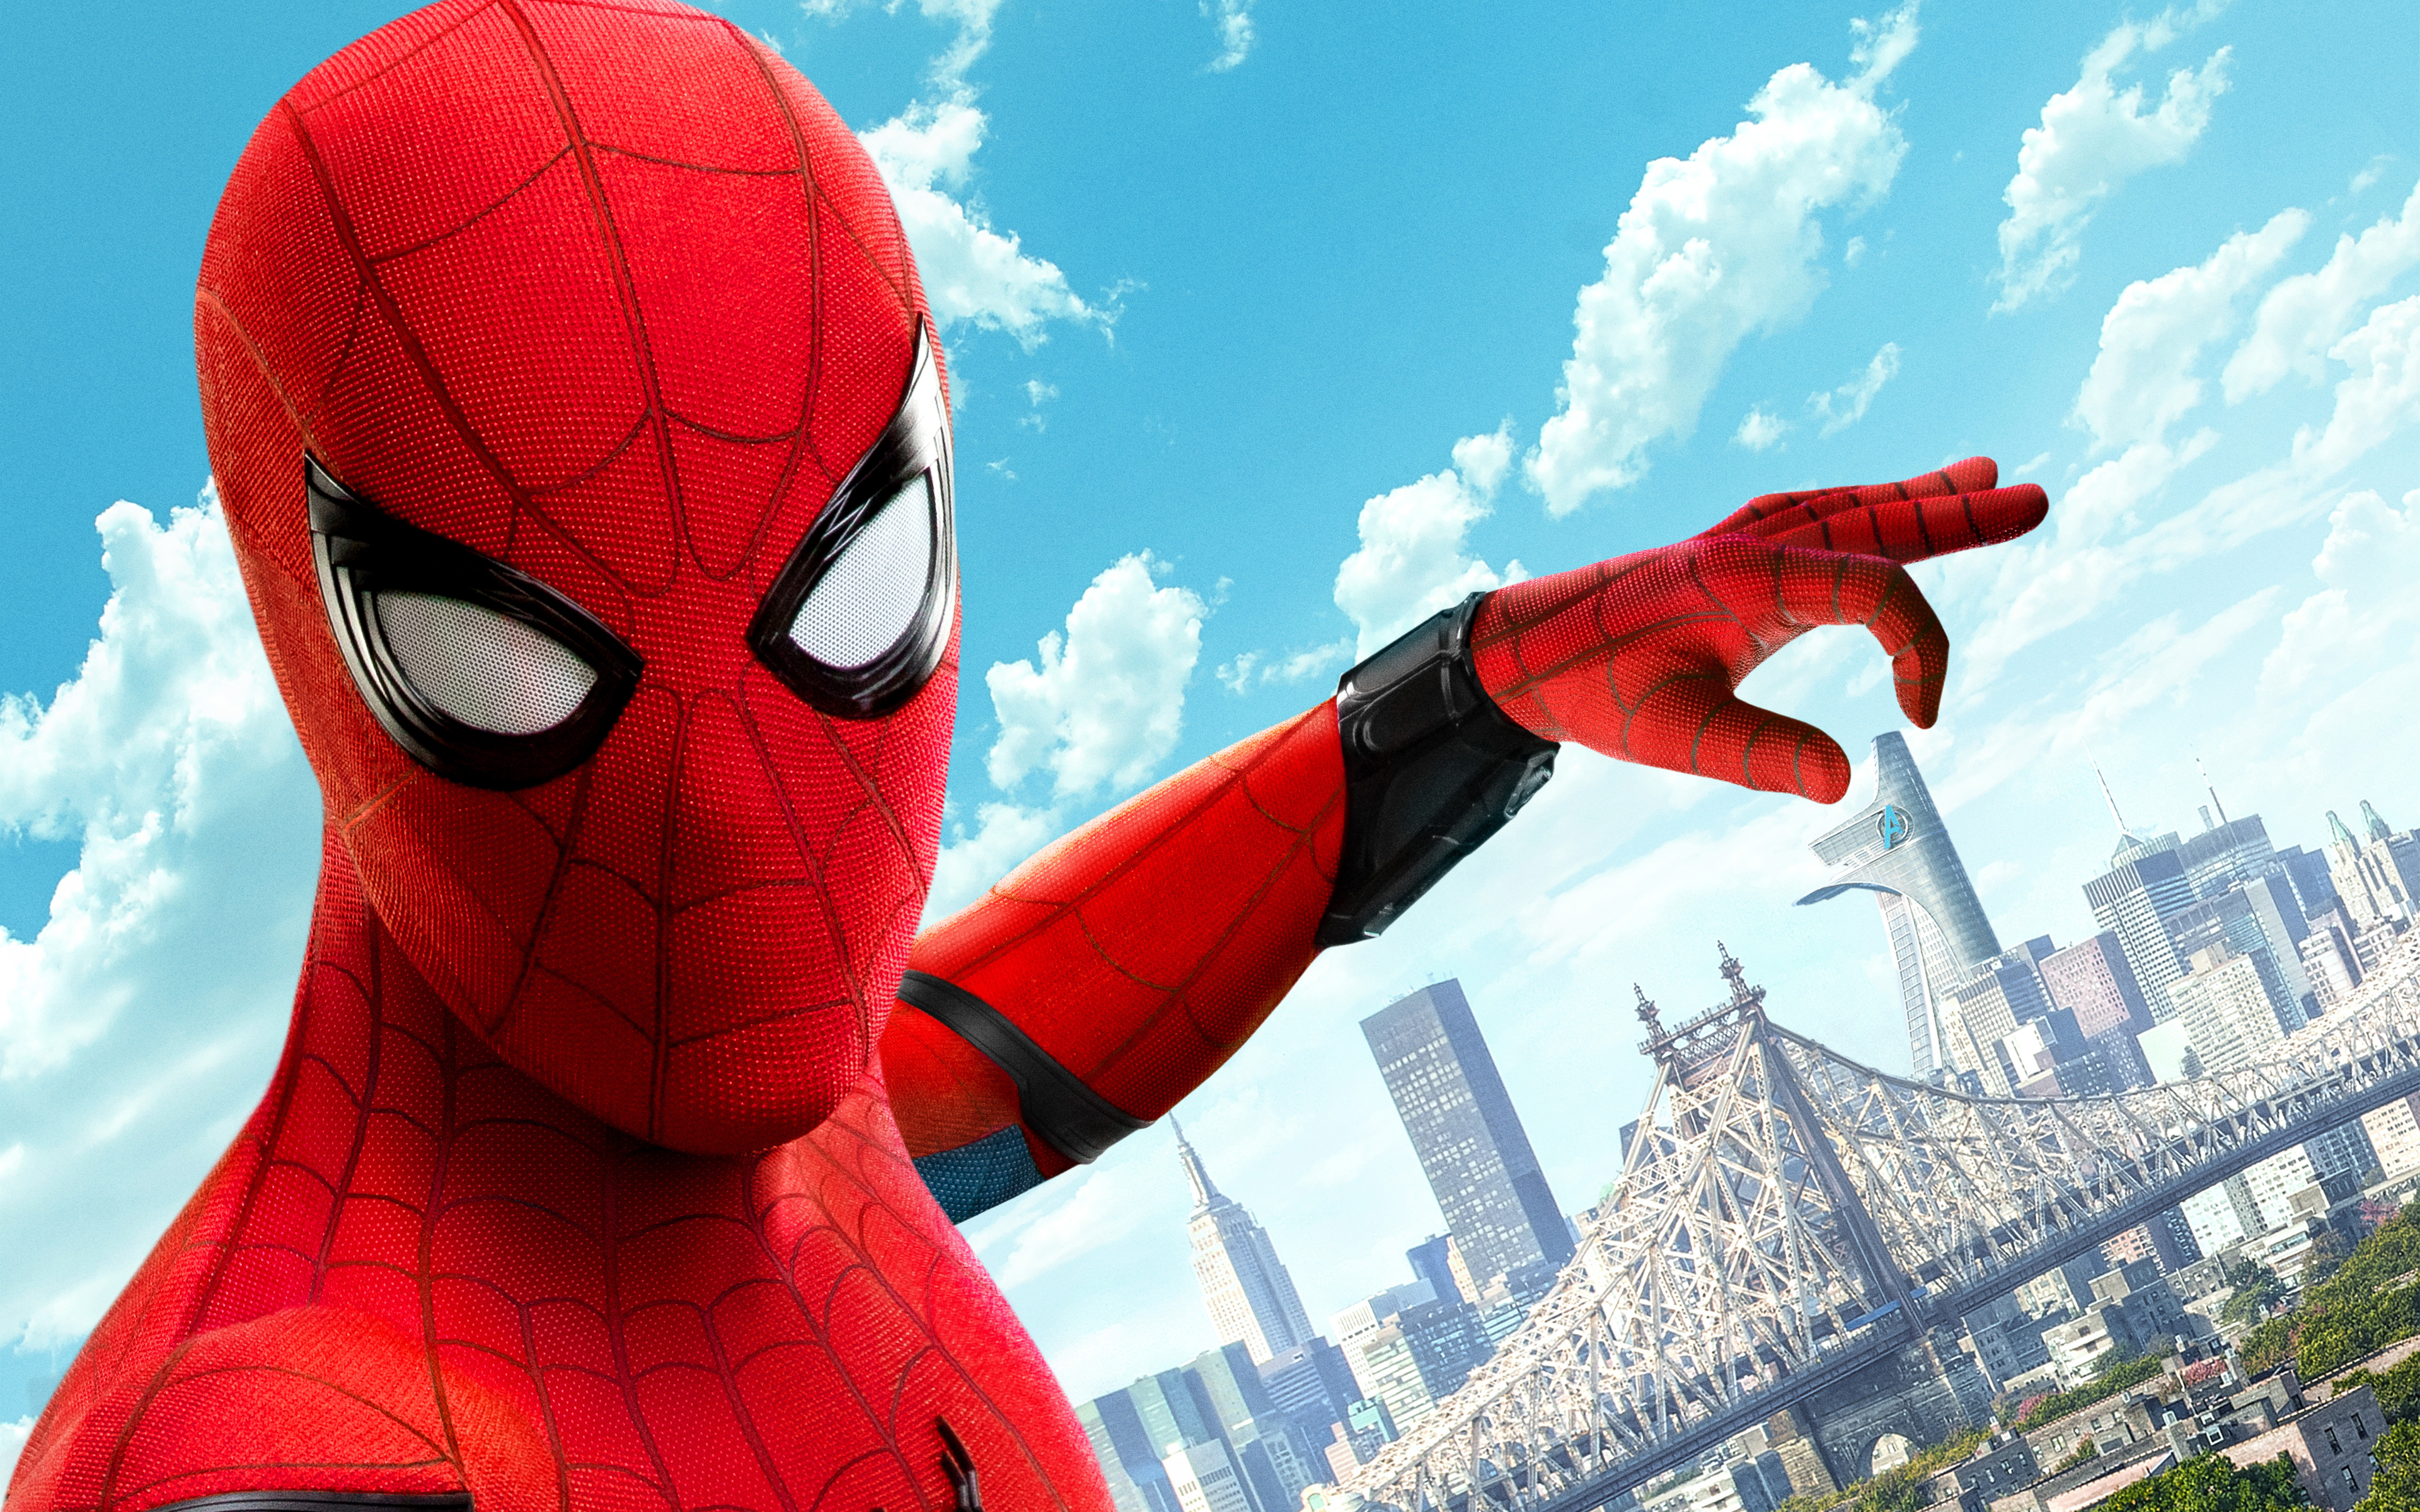 4K Spiderman Wallpapers High Quality | Download Free